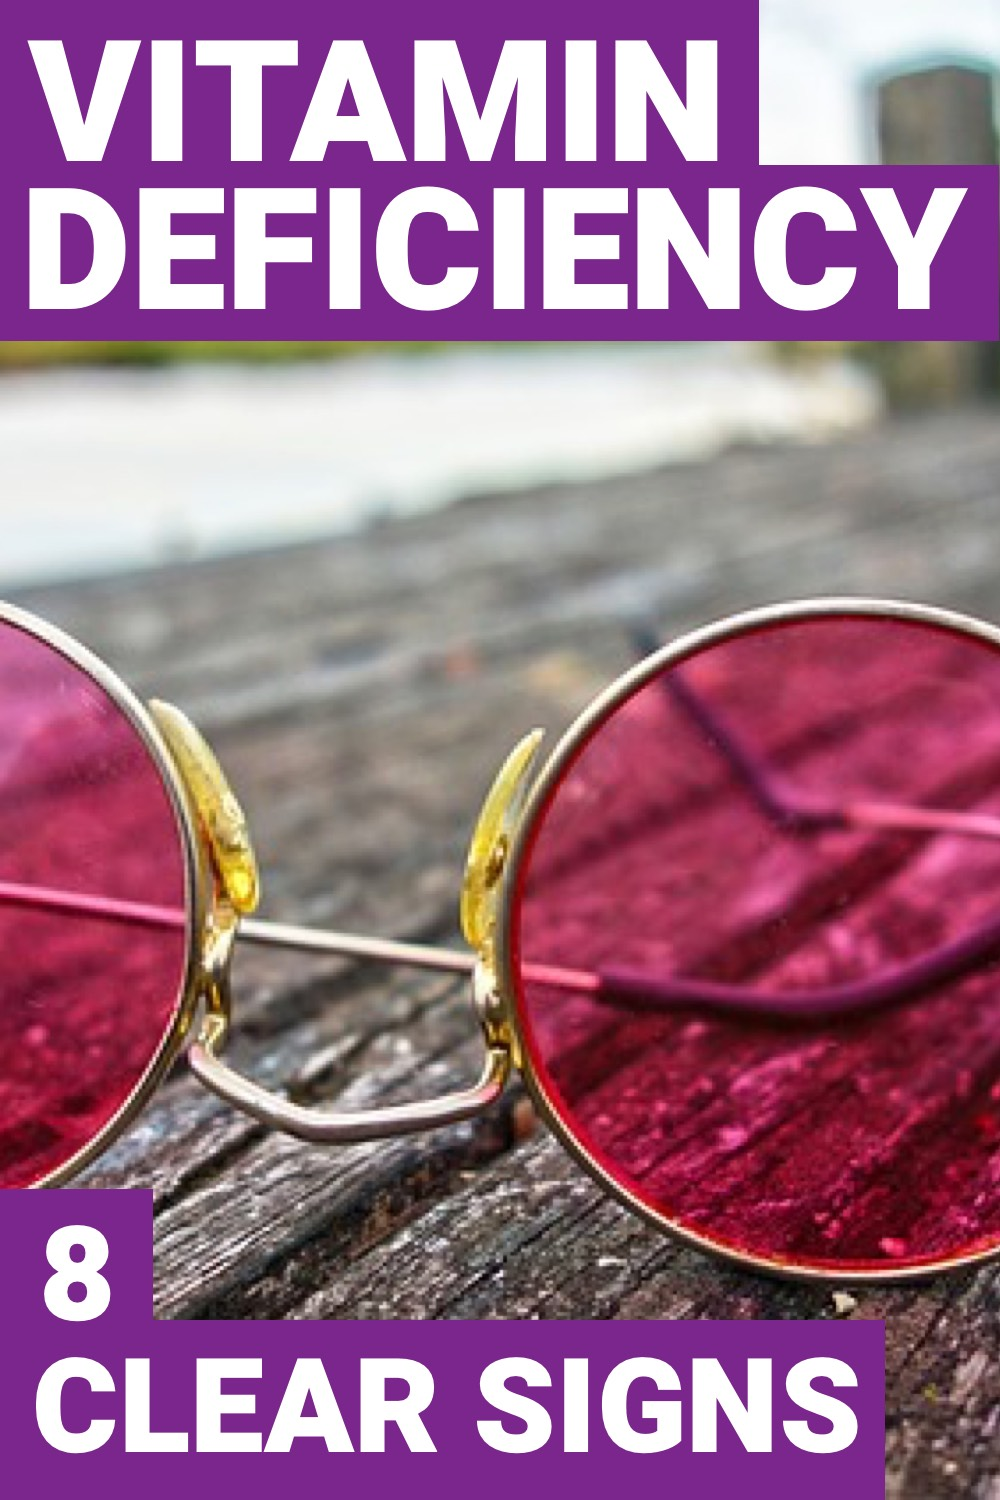 Do you have a vitamin deficiency? If you aren't too sure then here you can find 8 signs and symptoms that you have a vitamin deficiency.